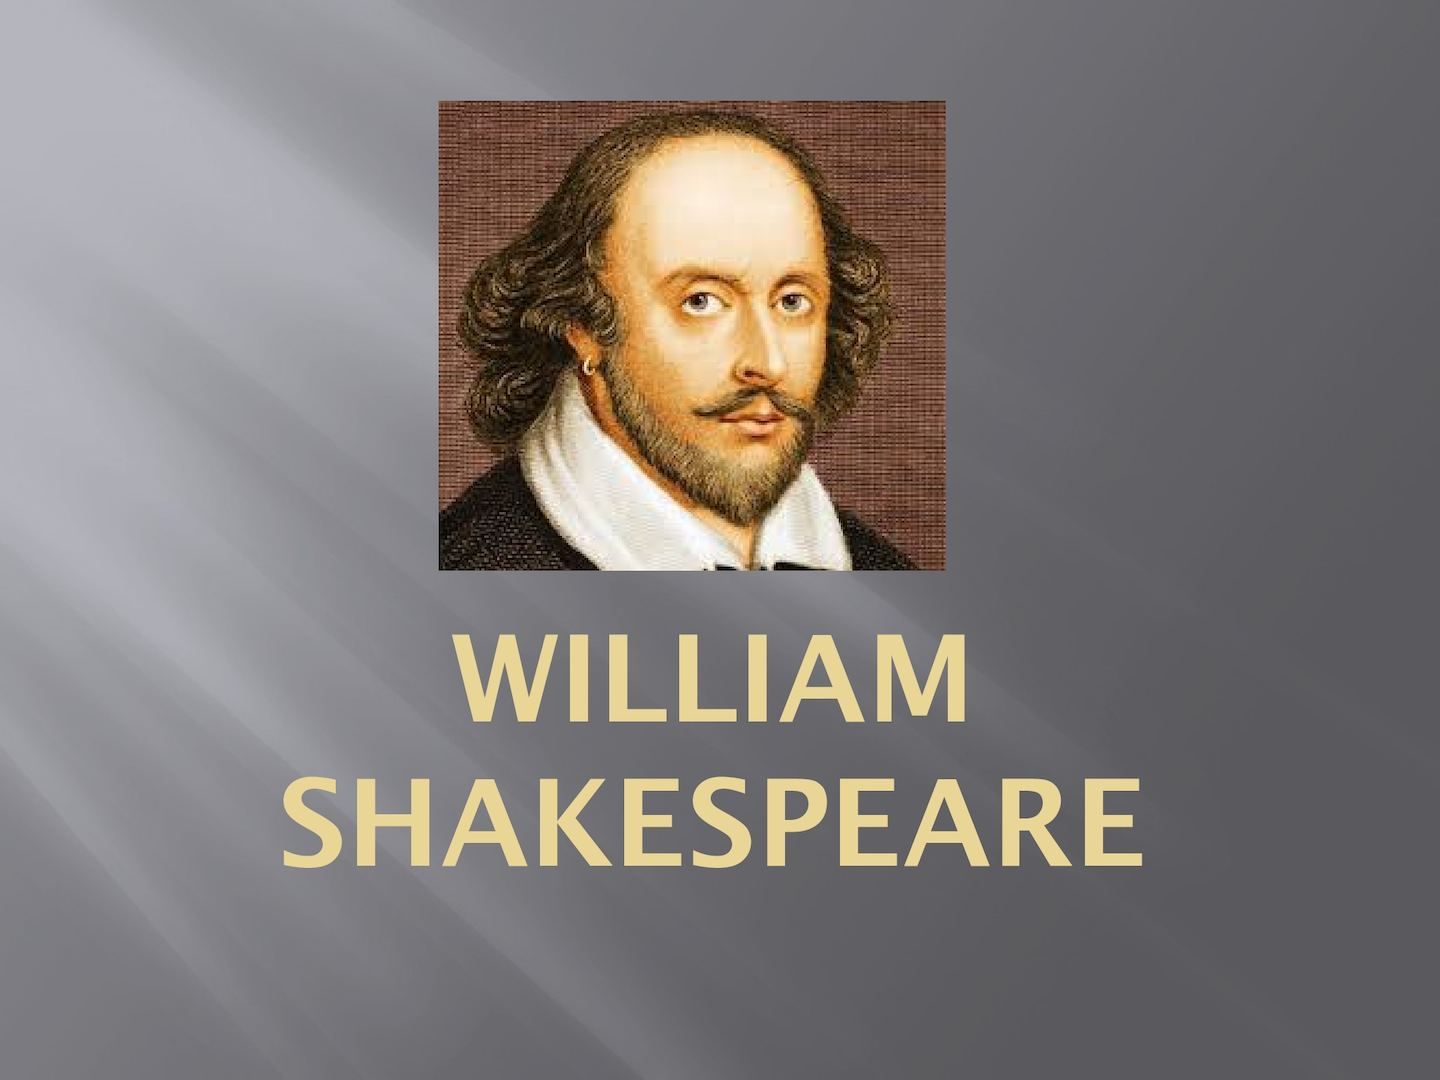 accomplishments of william shakespeare as a great playwright Hbo has released a documentary on writer and filmmaker arthur miller biography lin-manuel miranda his works influenced william shakespeare and generations.